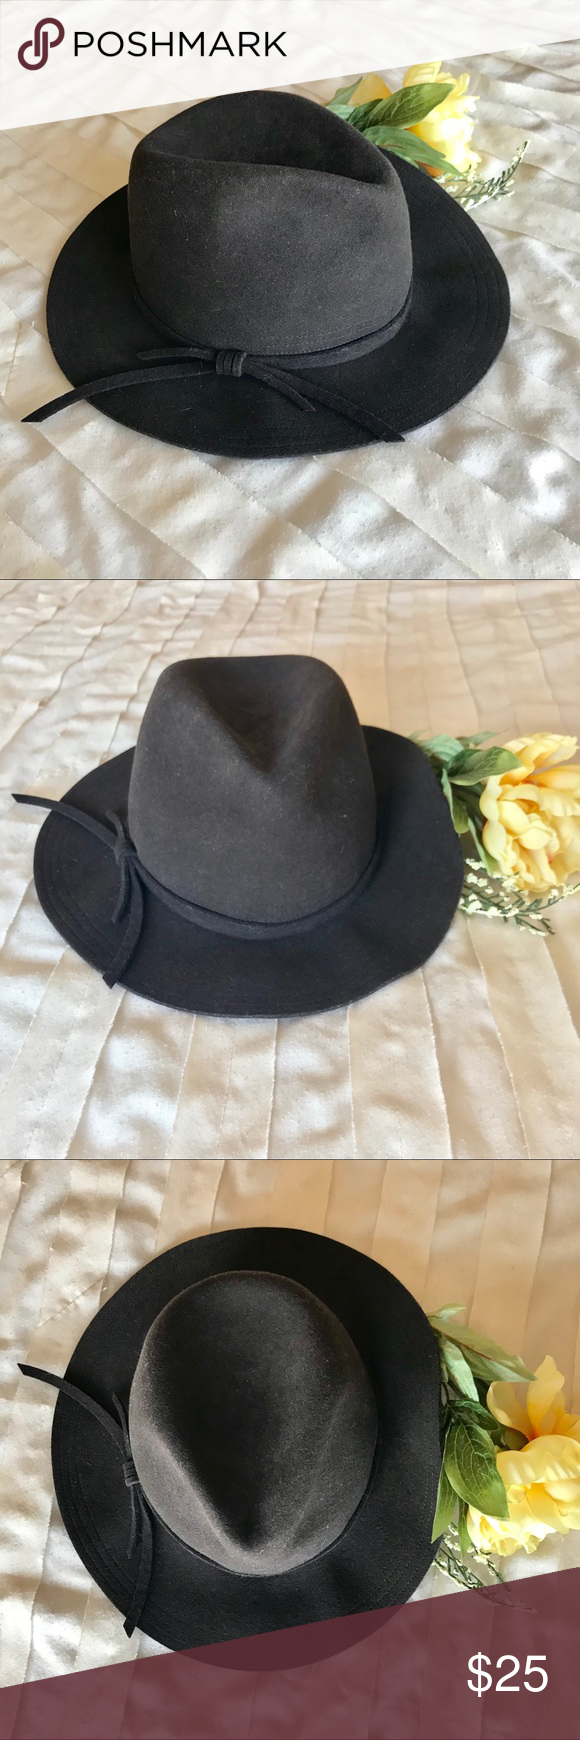 d0f44c2639d Wool Rancher  Hat by San Diego Hat Co. This 100% wool hat is pre ...